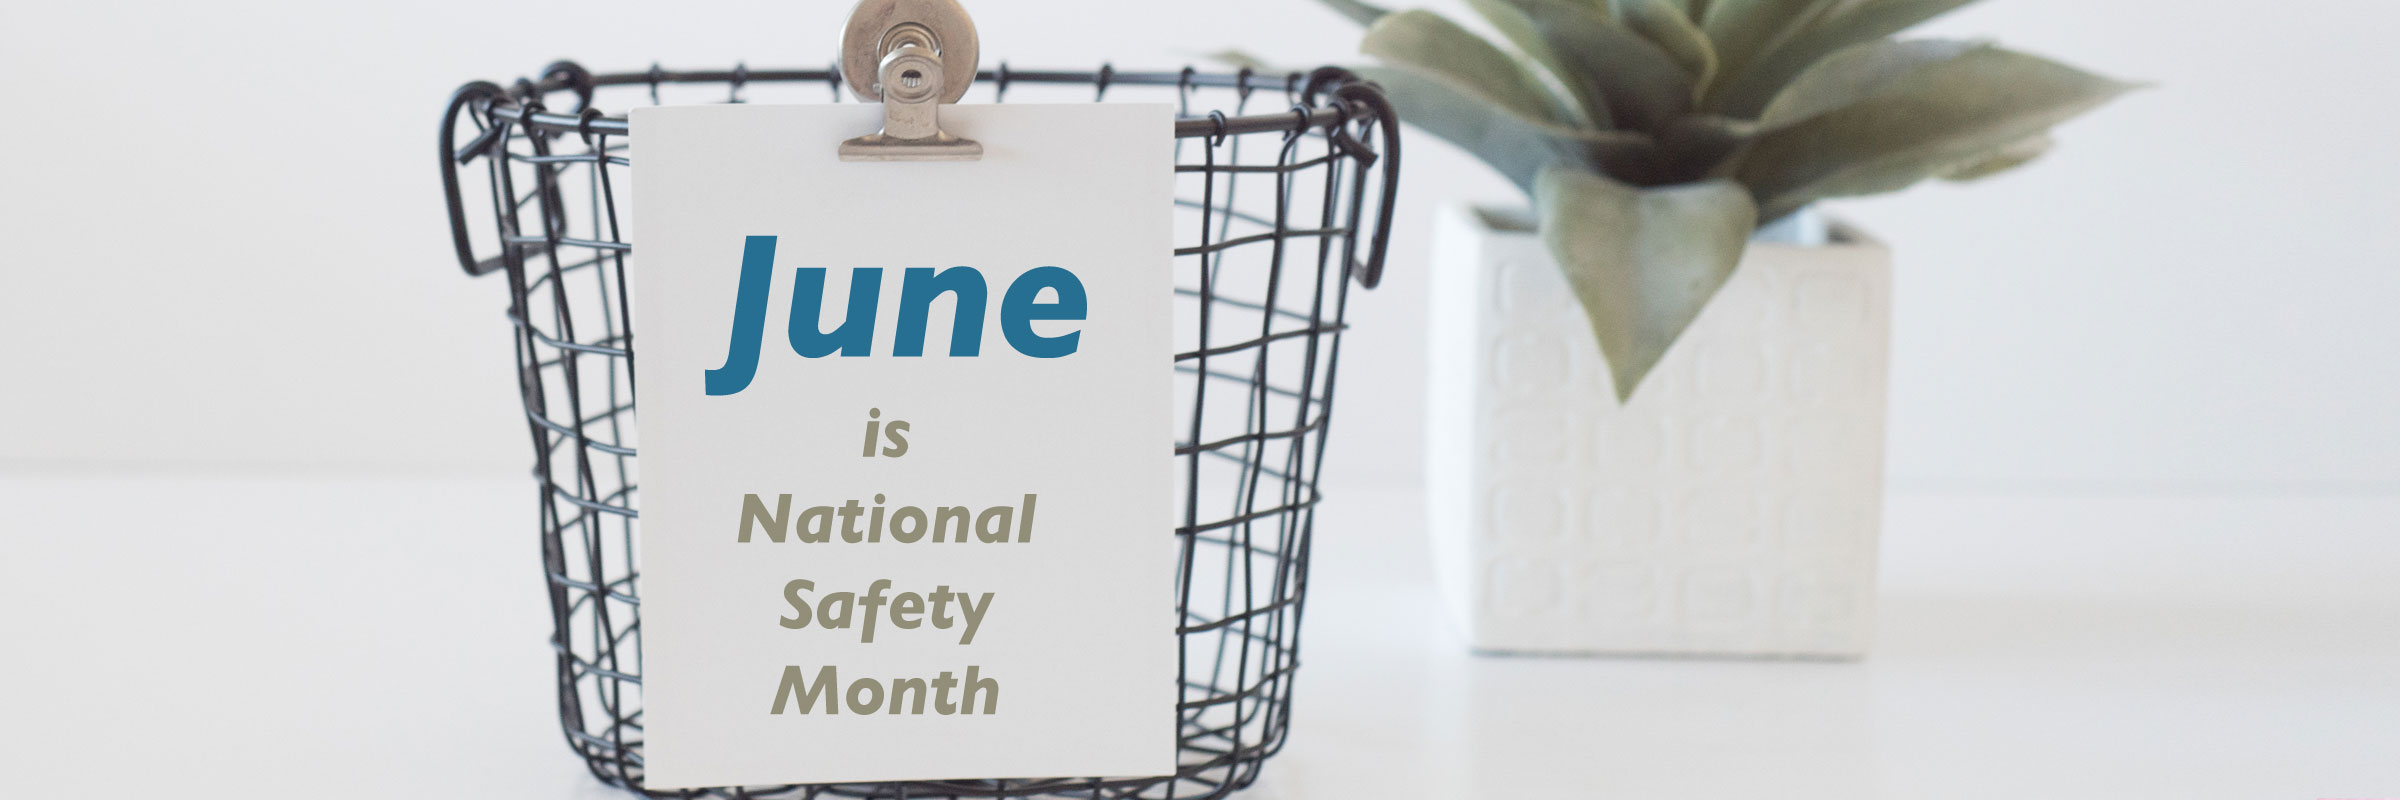 june-safety-month